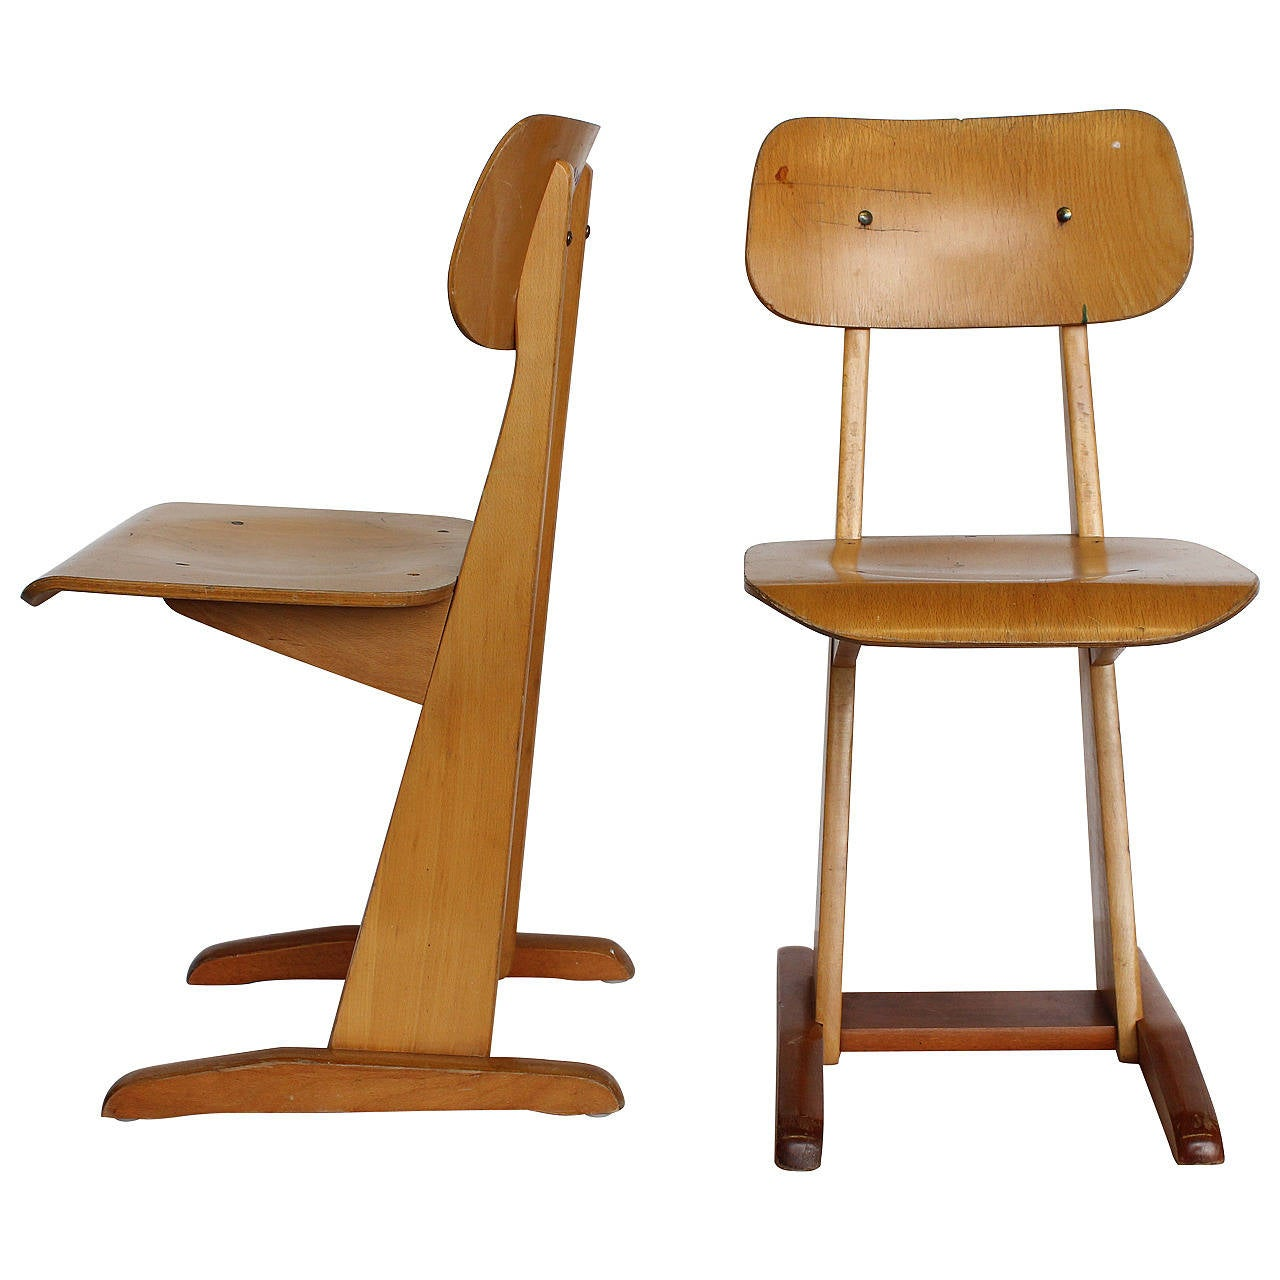 1950s bauhaus german sled school chairs by karl nothelfer for School furniture